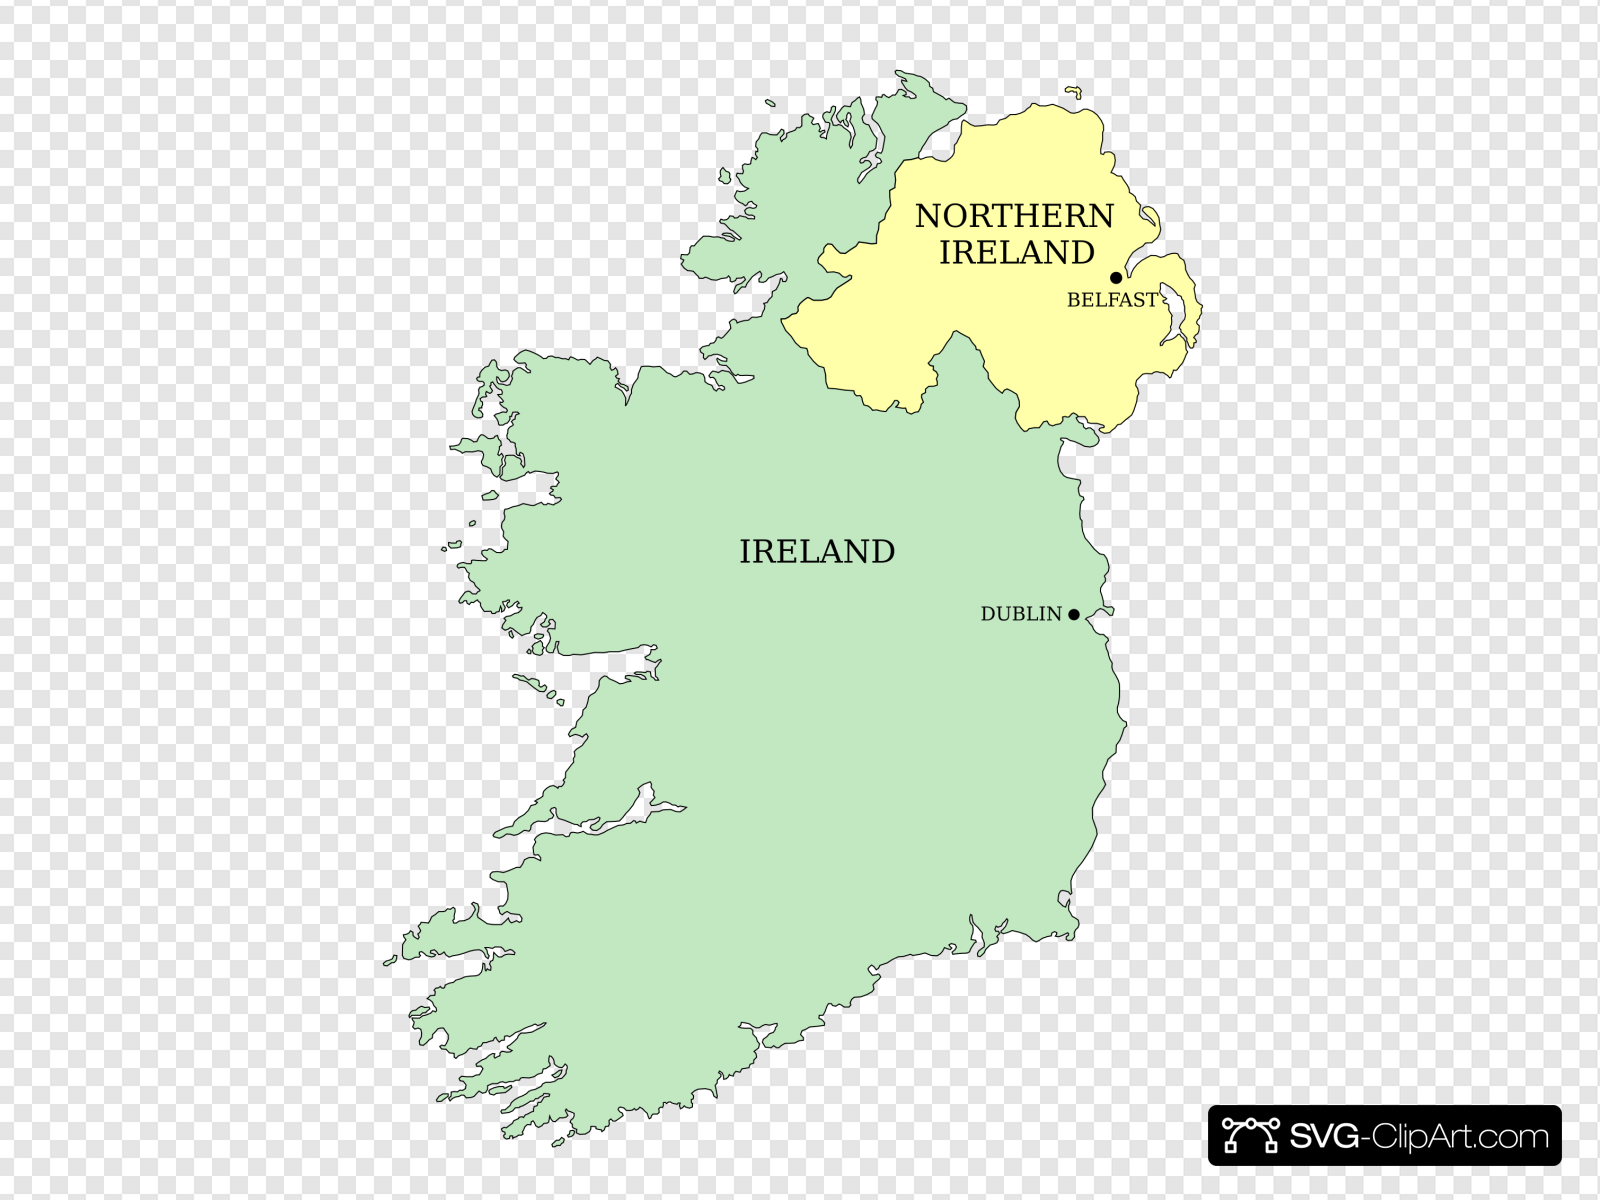 Simple Ireland Map Clip art, Icon and SVG.